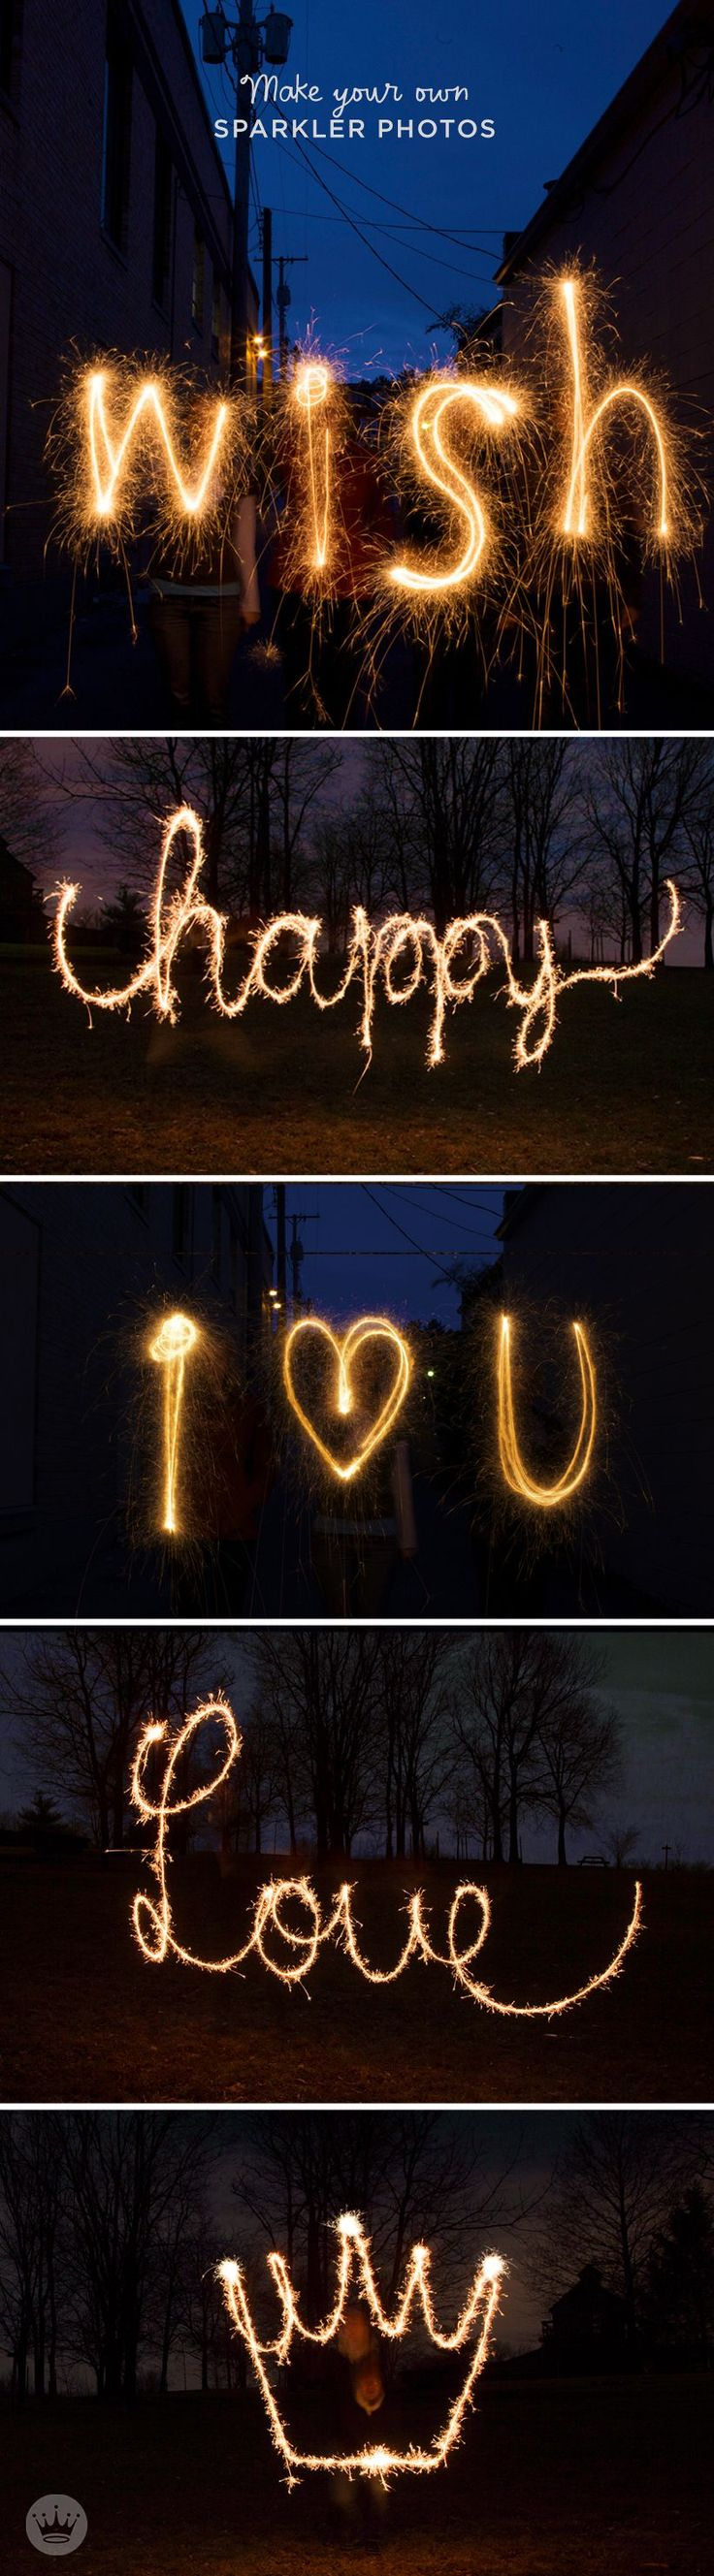 Sparkler Writing   Have some fun this Fourth of July with Sparkler Messages! Think.Make.Share, a blog from the Creative Studios at Hallmark, will teach you how to use your cameras to create memorable photographs as you write with sparklers! This is such a cool photo idea that can be used for all kinds of specials occasions—like engagements, weddings, baby announcements, and gender reveals!